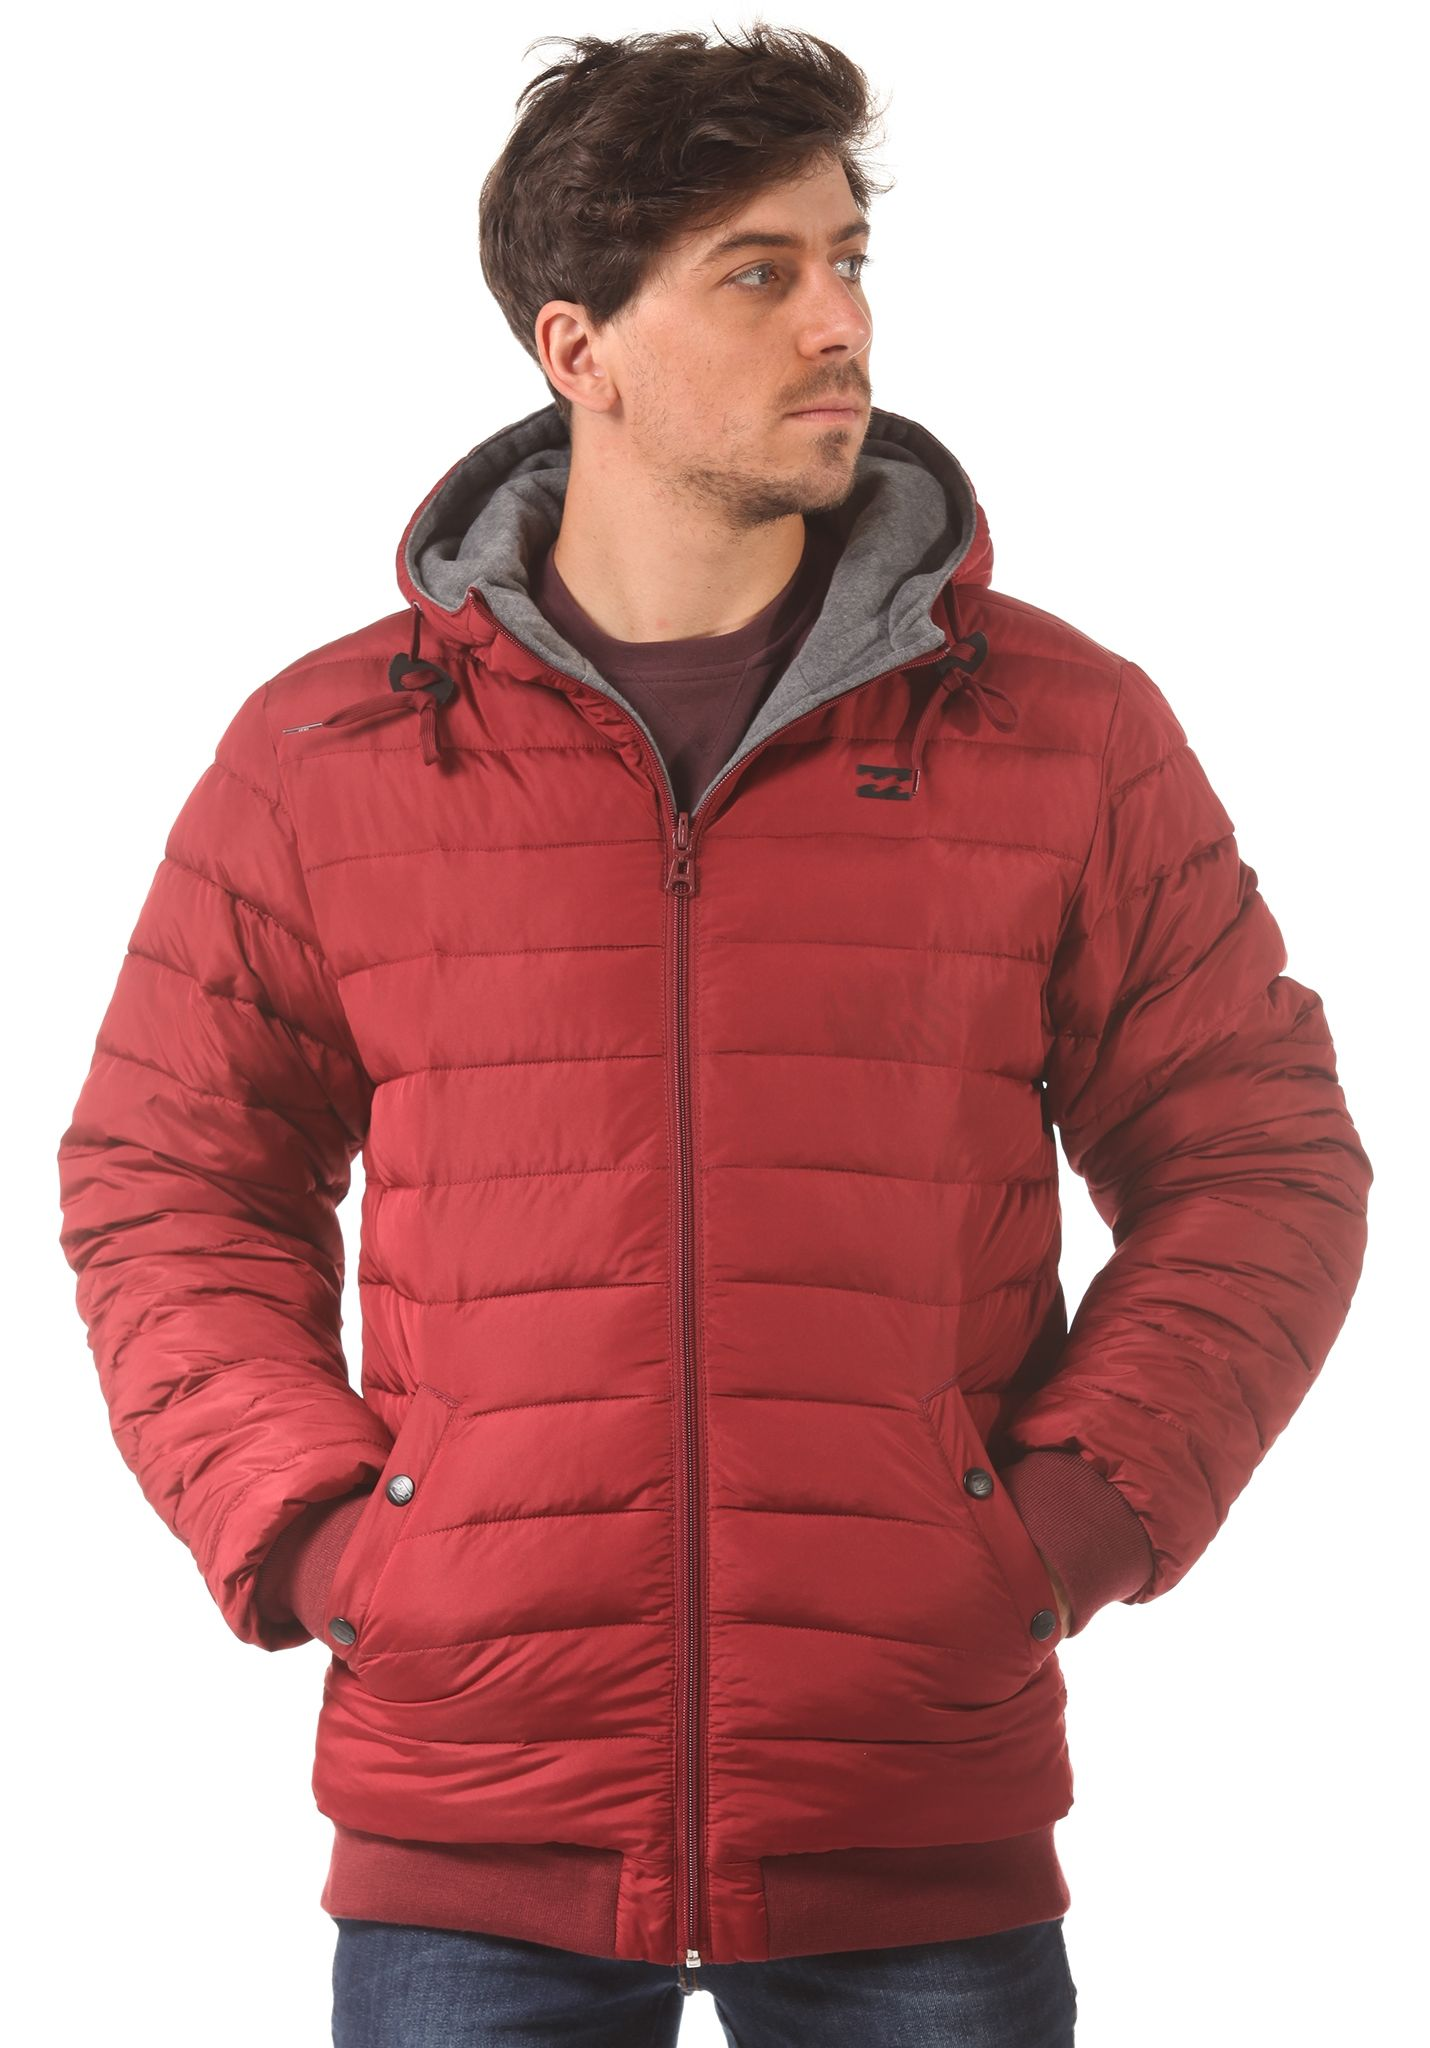 Rouge Veste Sports Homme Planet Pour Revert Billabong qPxanwUzBA